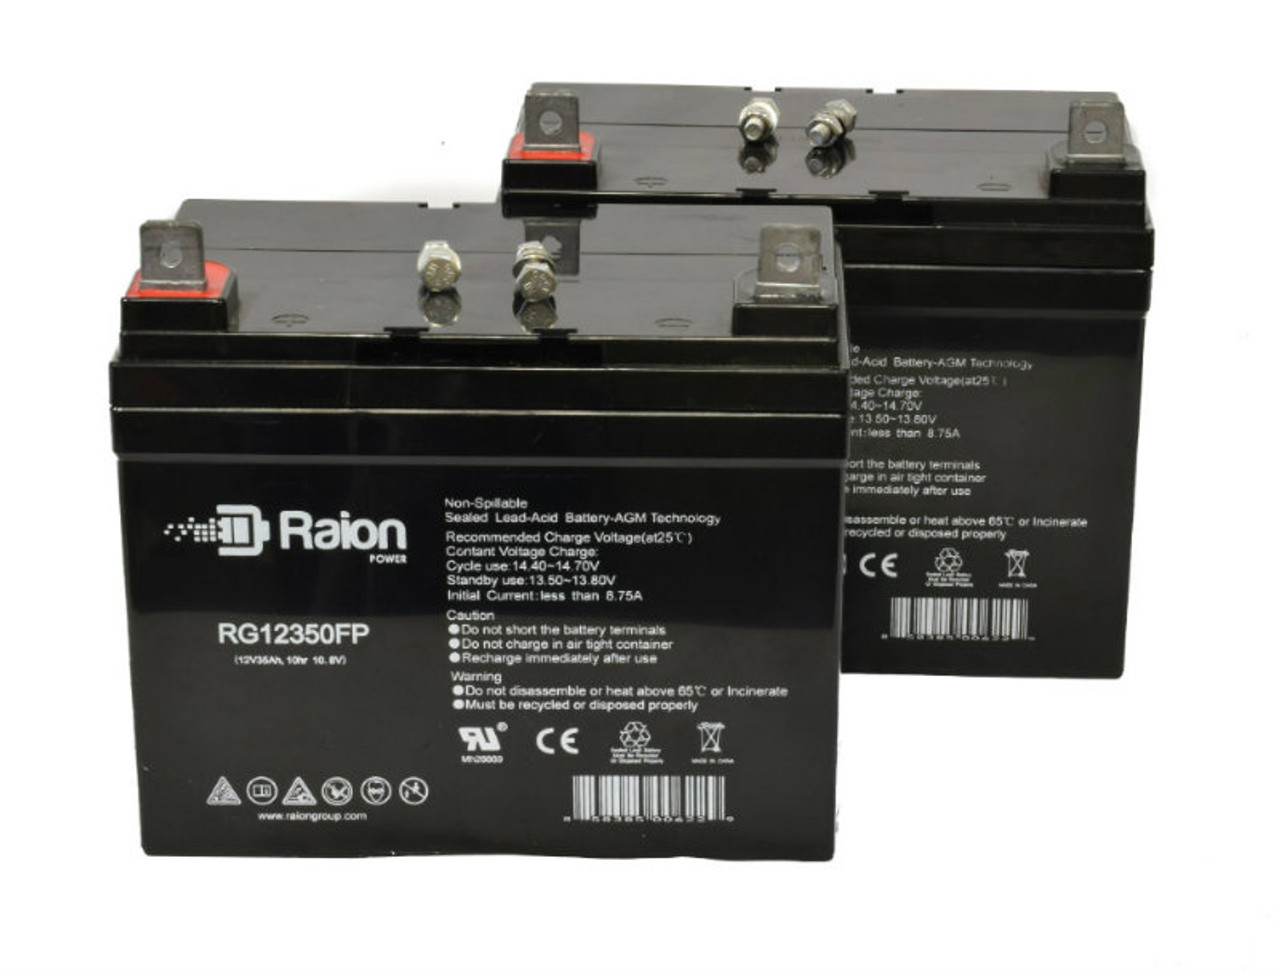 Raion Power RG12350FP Replacement Wheelchair Battery For Golden Technology Scoota Bug U1 (2 Pack)